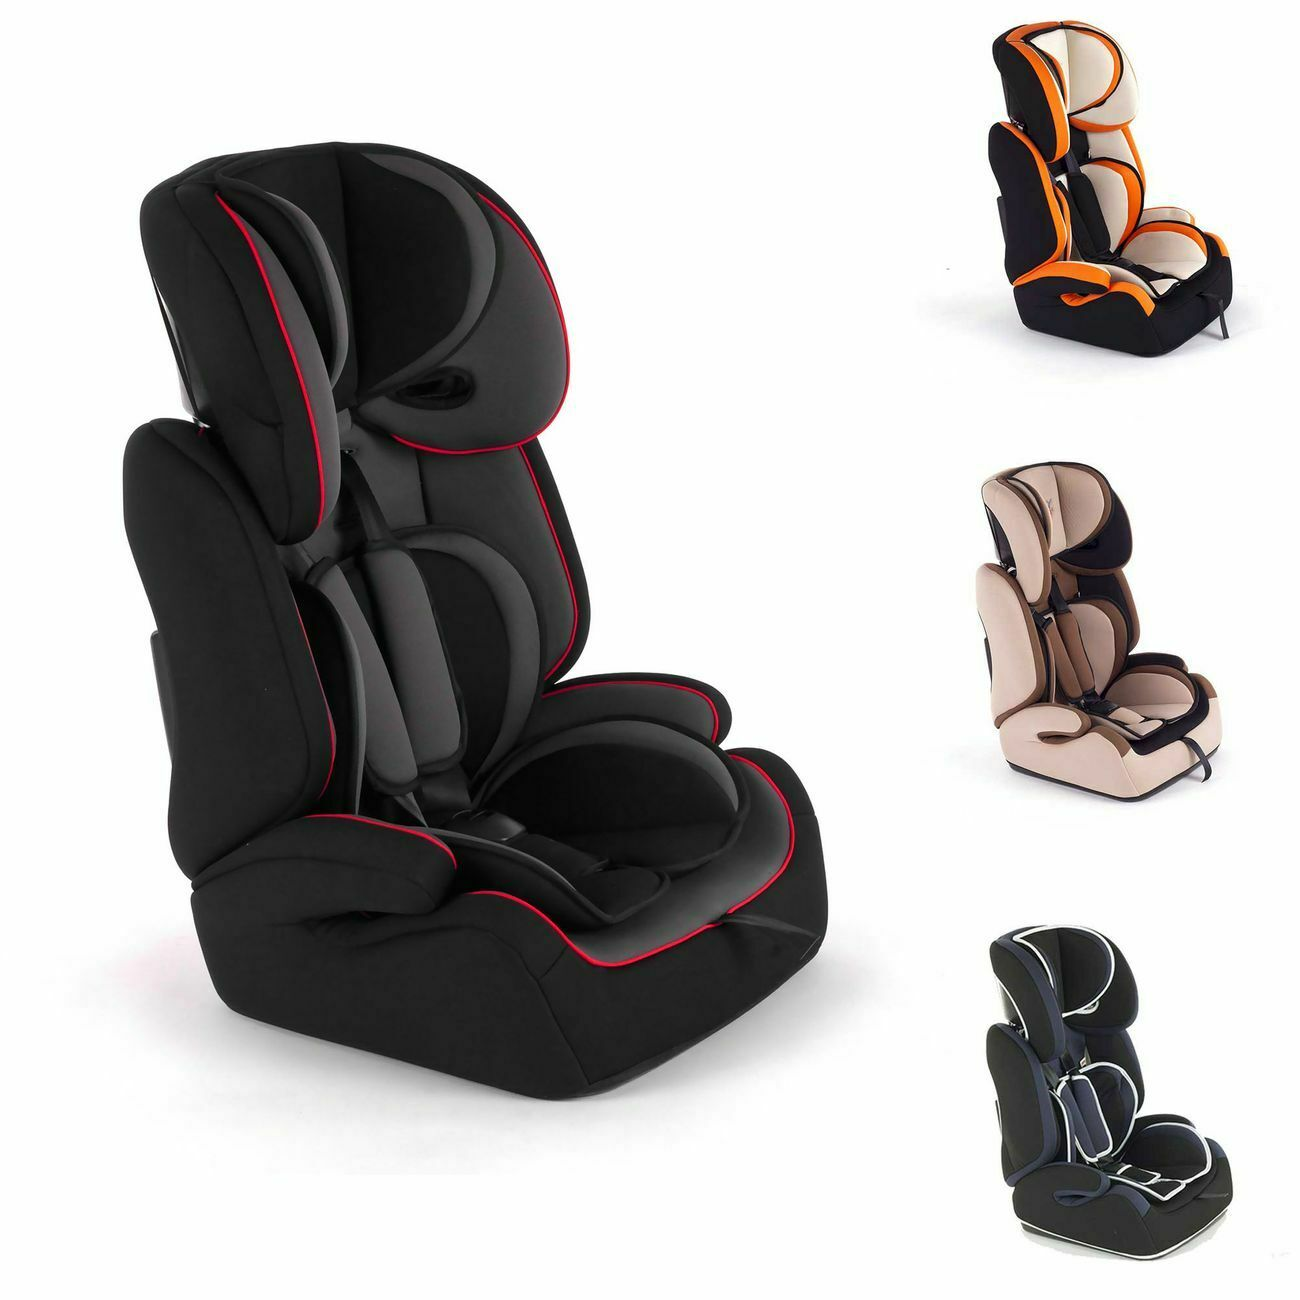 autokindersitz kinderautositz autositz kindersitz 9 36 kg. Black Bedroom Furniture Sets. Home Design Ideas